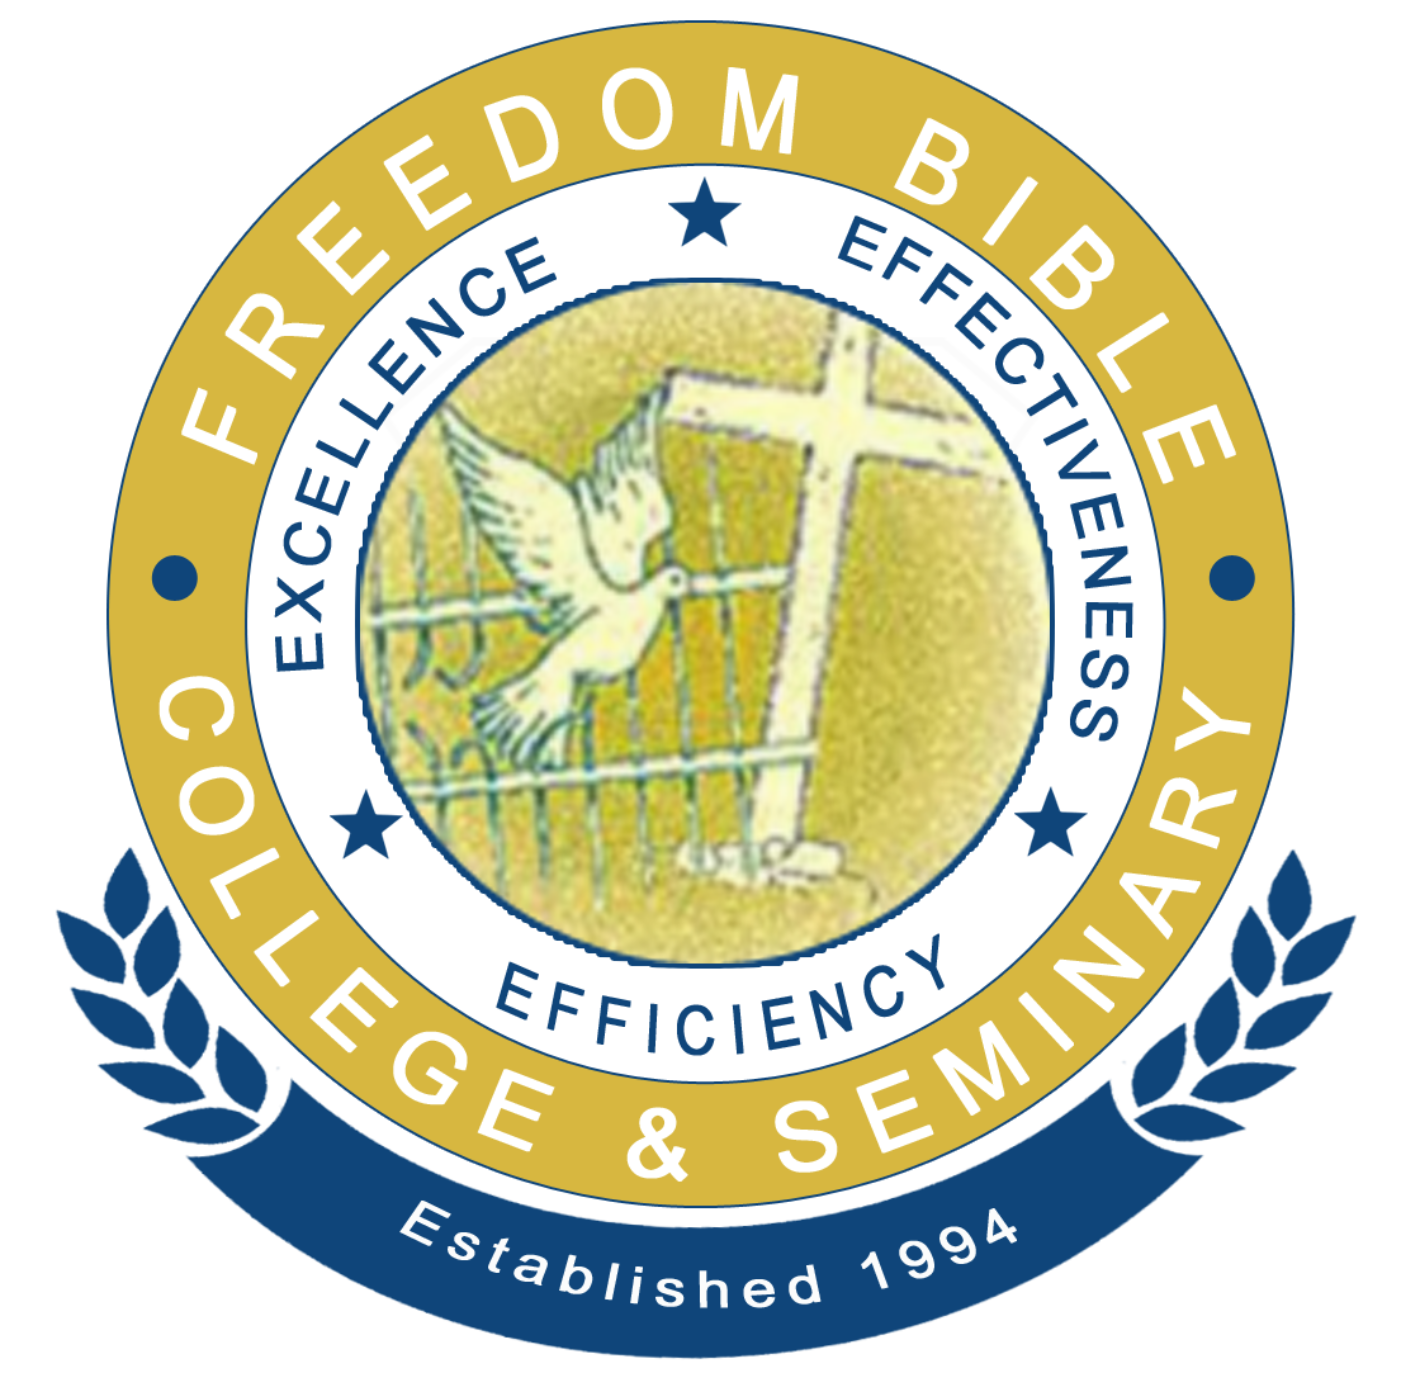 Freedom Bible College & Seminary